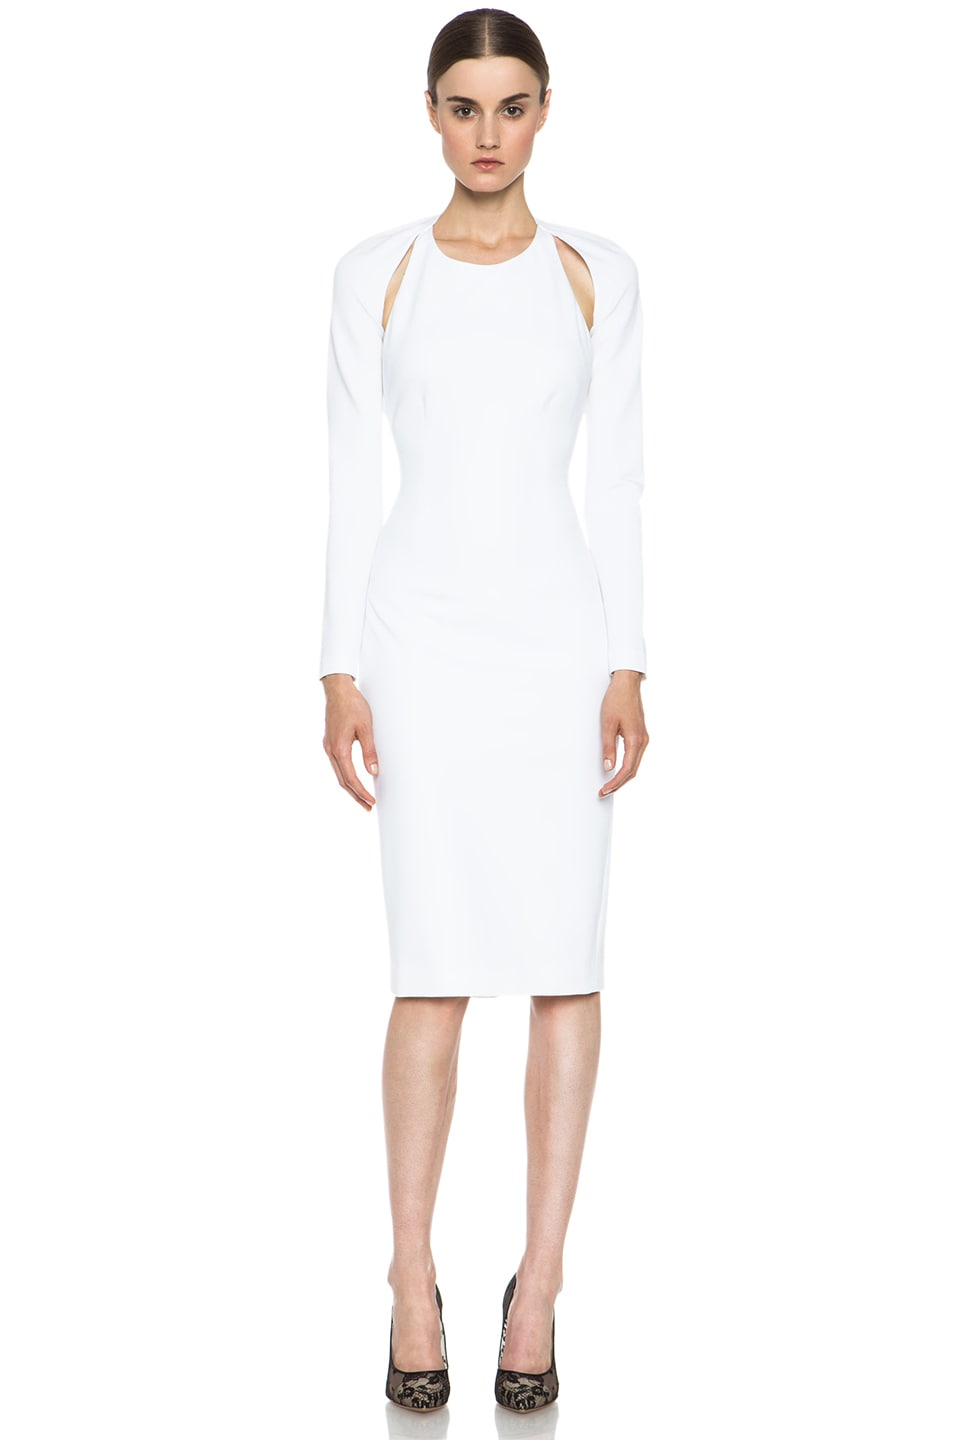 Image 1 of Cushnie et Ochs Oscar Dress in White